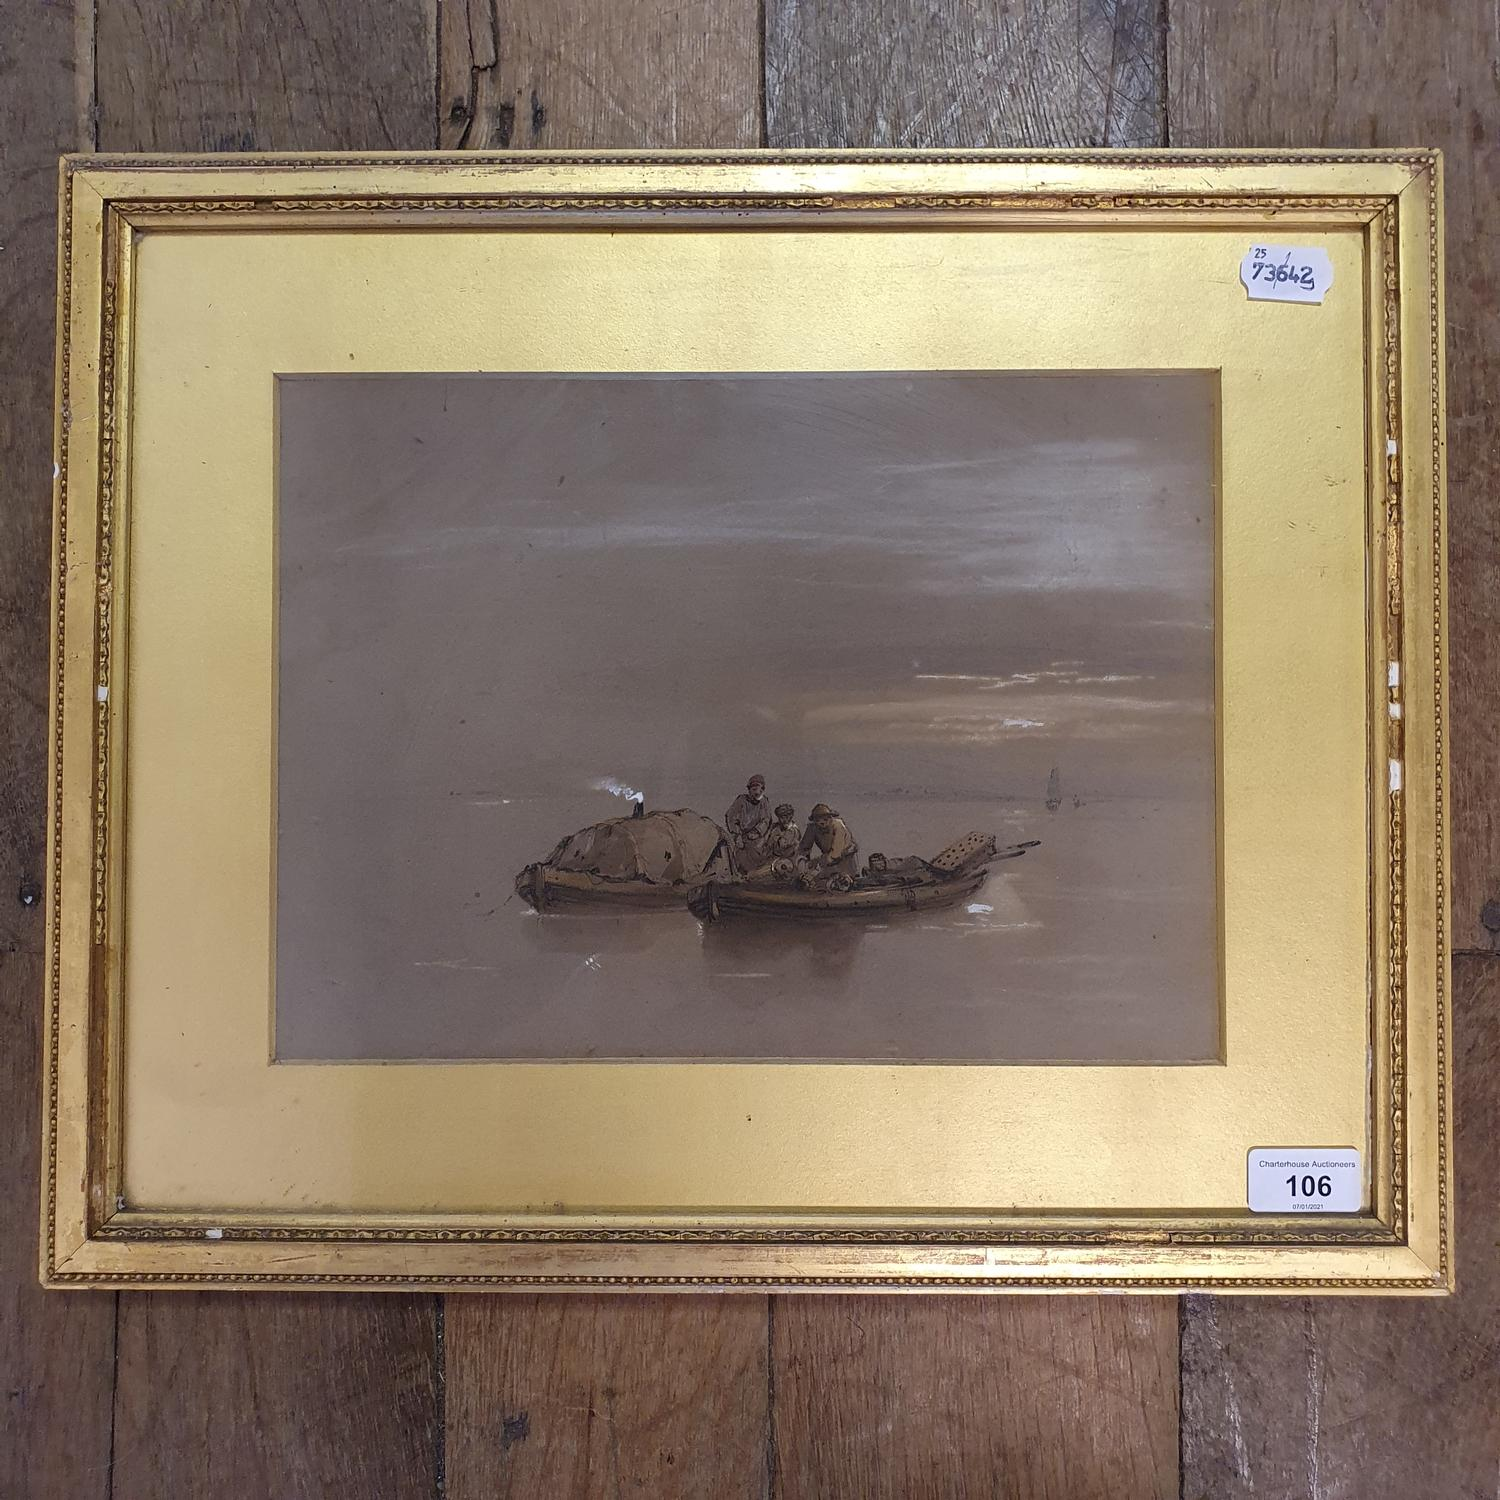 English school, 19th century, smugglers in two boats, watercolour 23 x 32 cm - Image 2 of 2